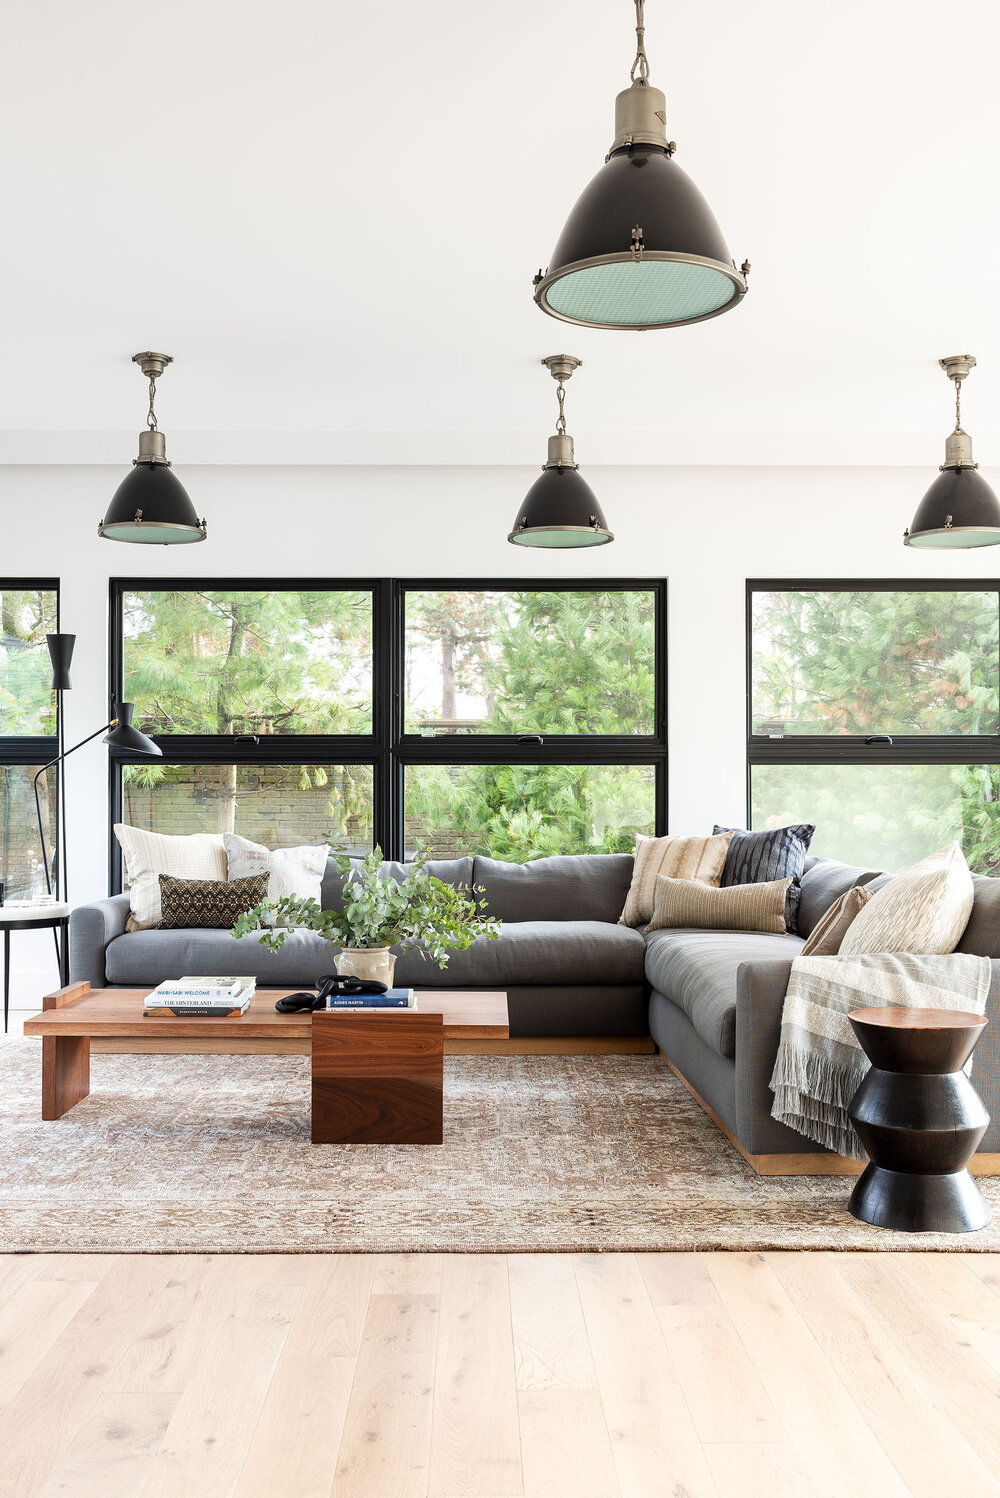 Best Warm White Paint Colors - Sherwin Williams - ABOVE IMAGE: via Studio McGee feat. paint color 'White Flour' from Sherwin Williams